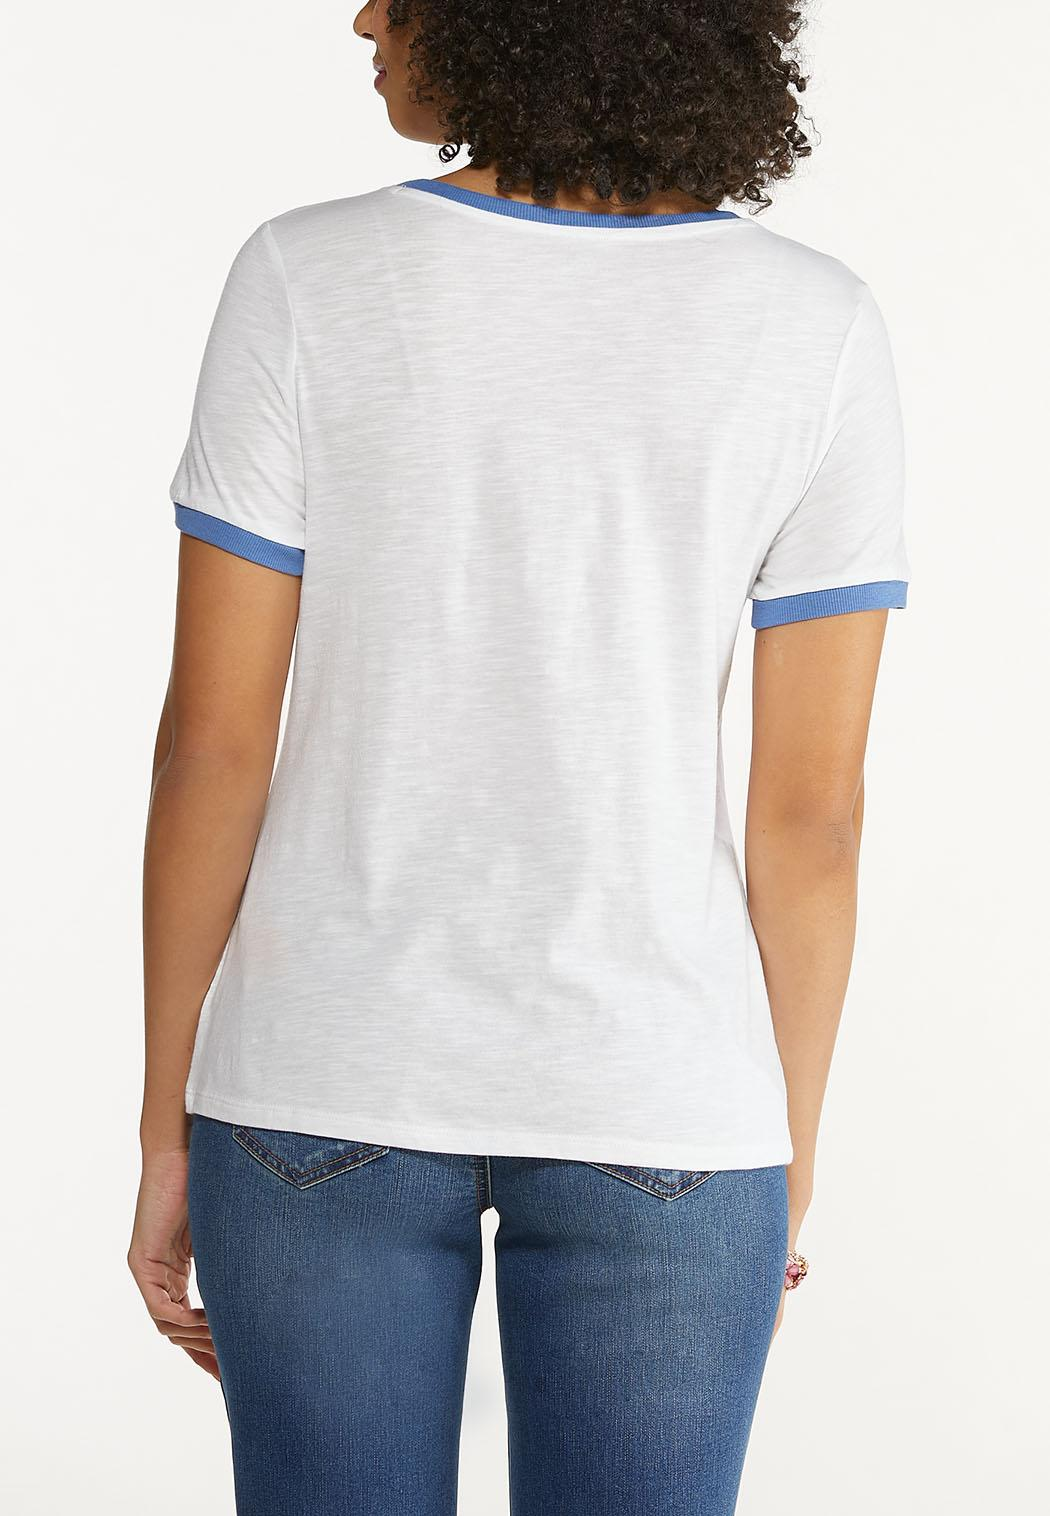 Plus Size Truly Simply Blessed Tee (Item #44589268)